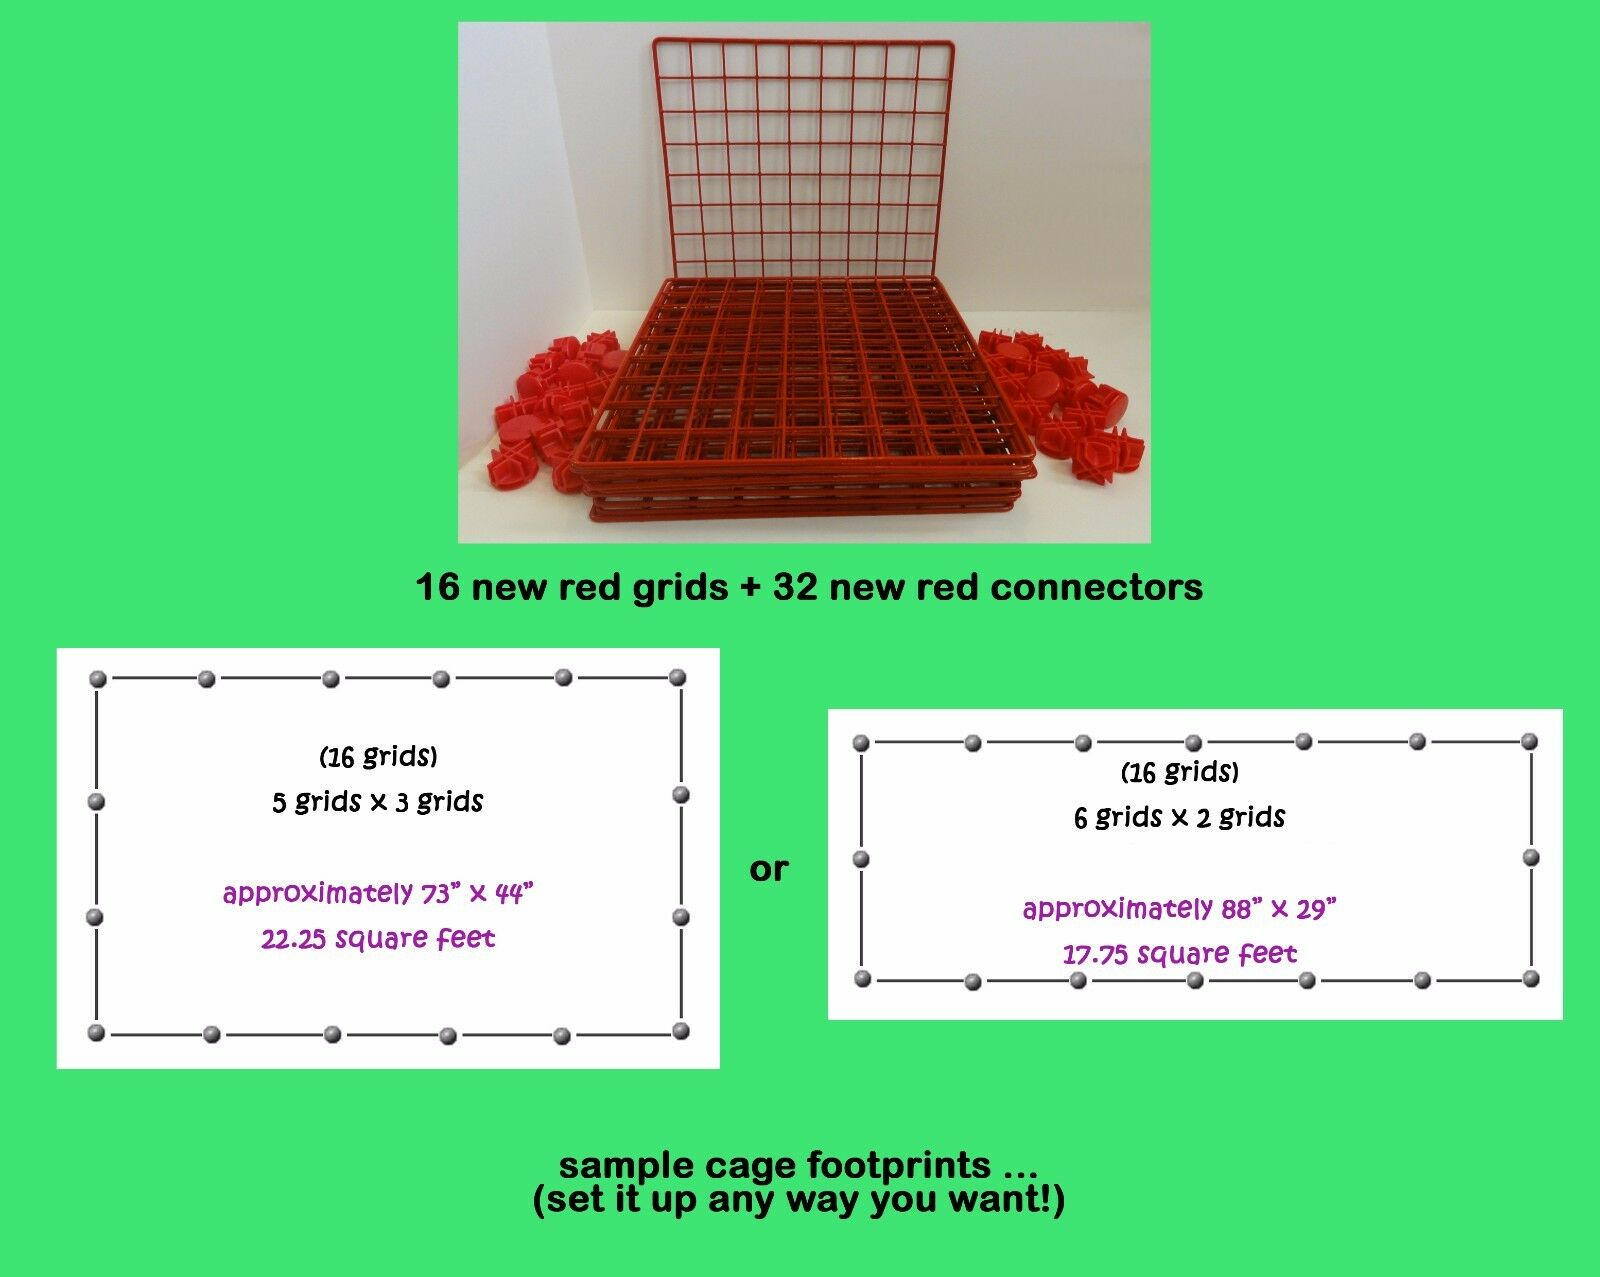 16 rosso grids + 32 connectors for guinea pig C&C (cube & coroplast) cage + care